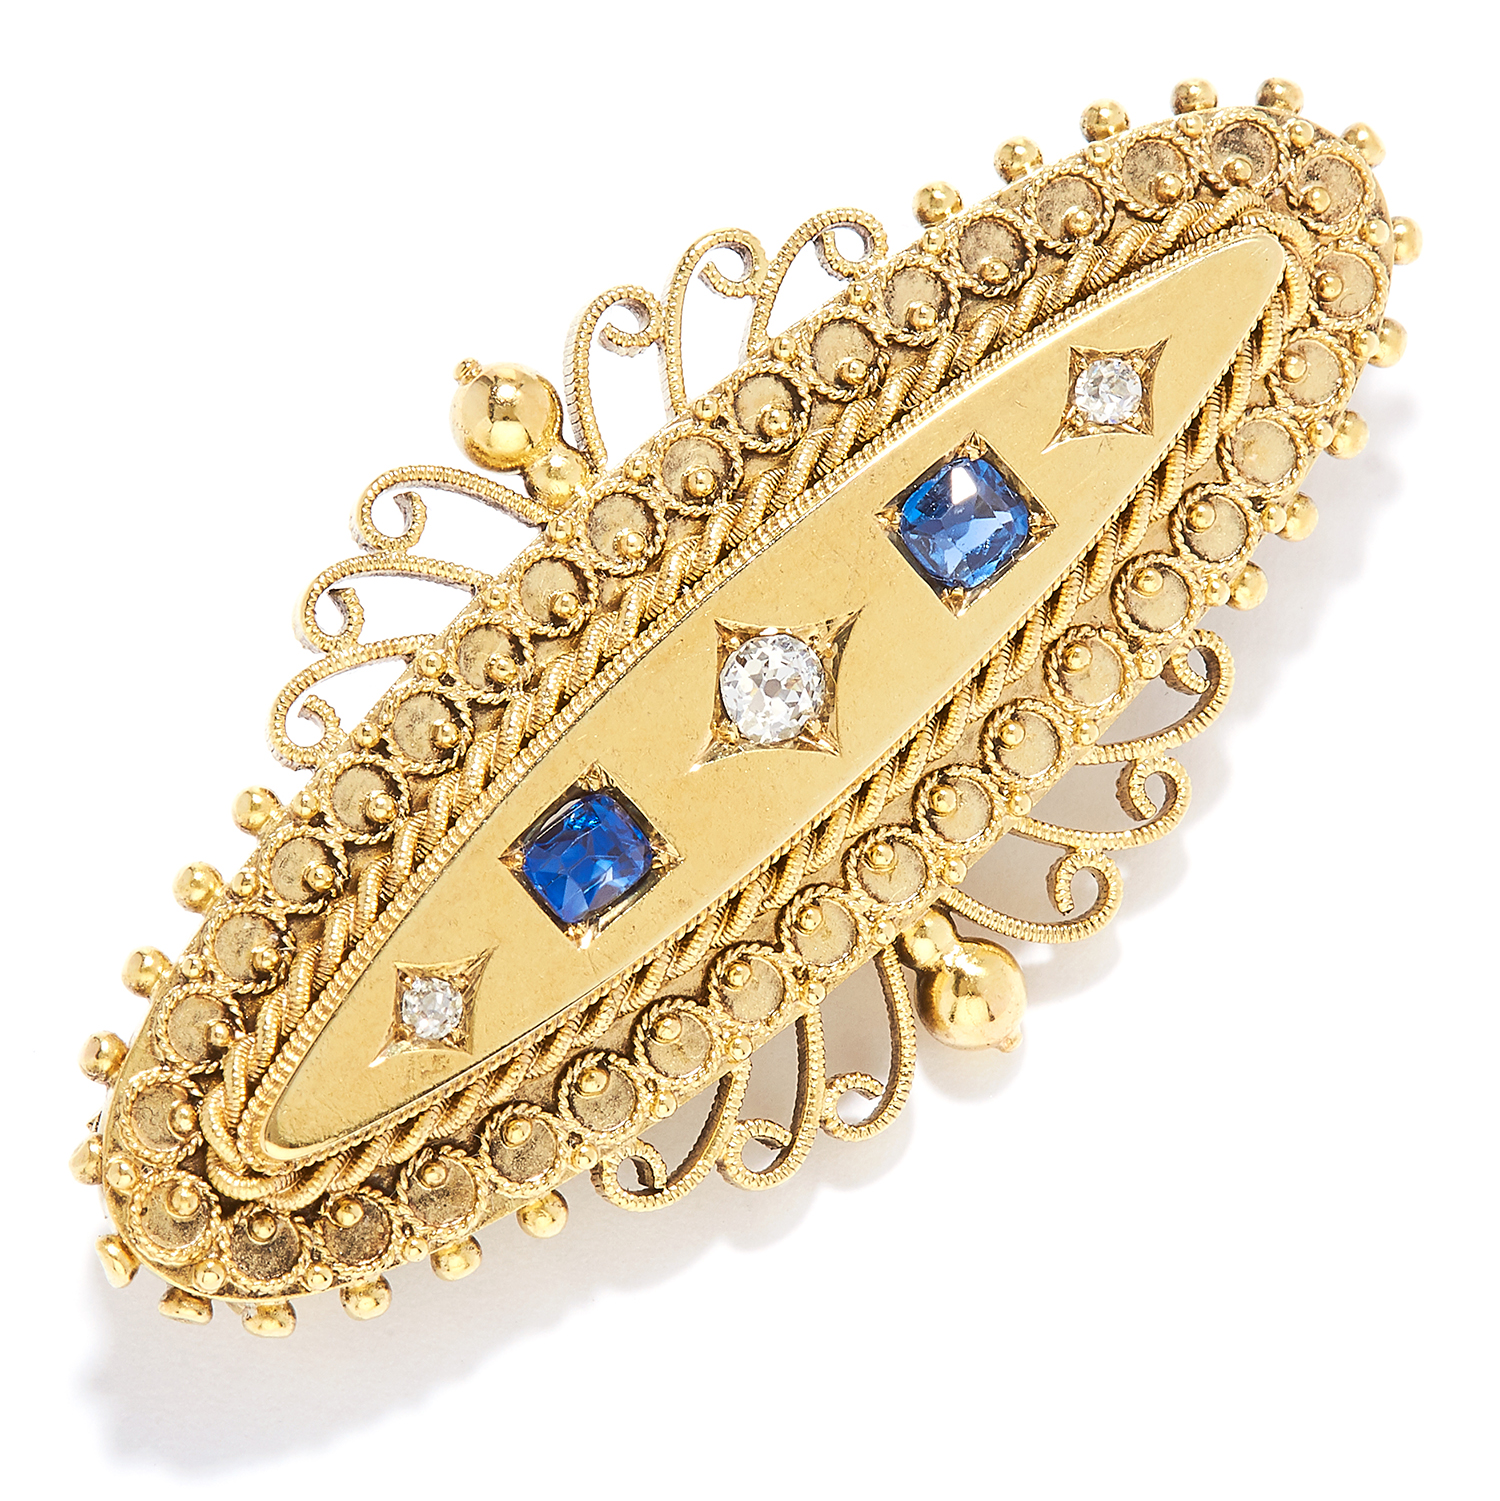 Los 10 - ANTIQUE SAPPHIRE AND DIAMOND BROOCH in high carat yellow gold, set with alternating old cut diamonds